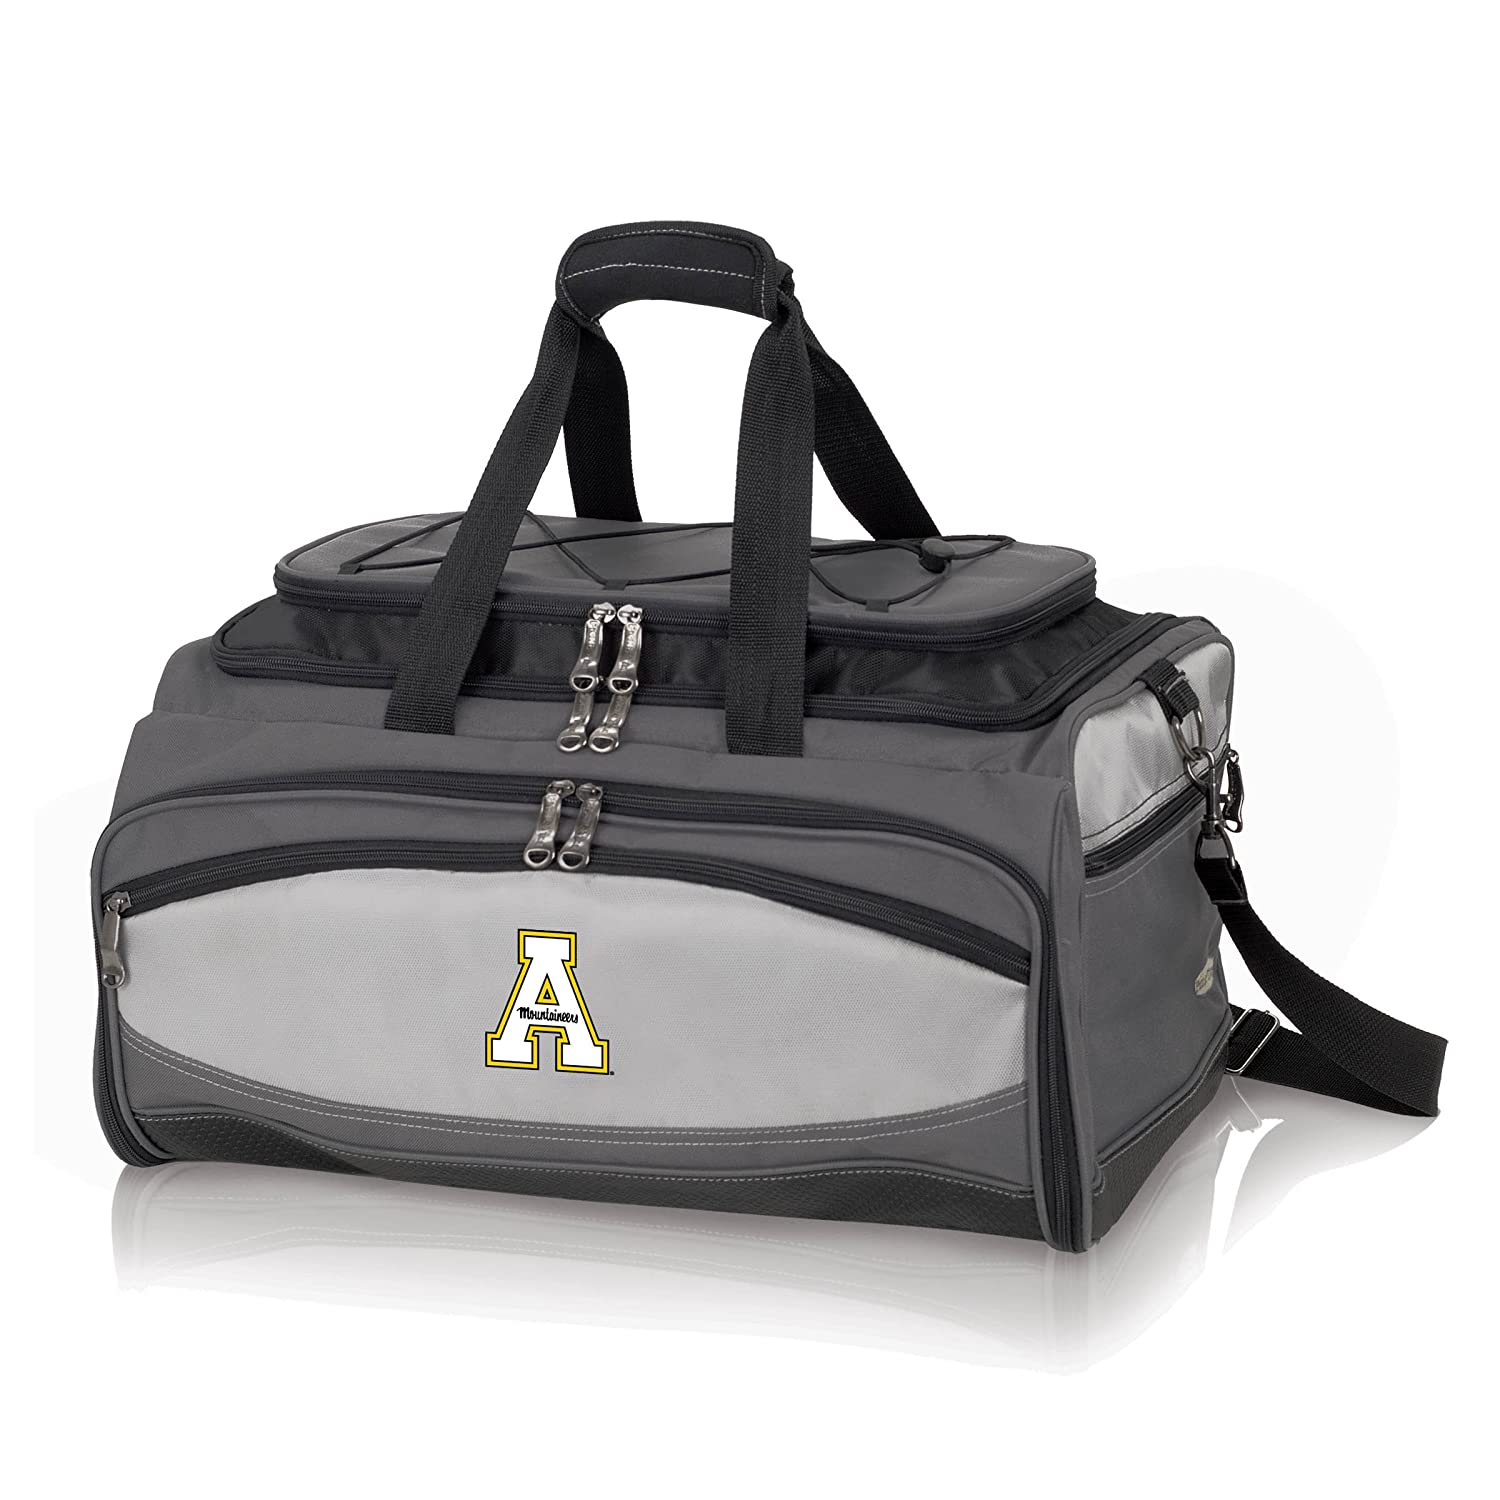 NCAA Appalachian State Mountaineers Buccaneer Tailgating Cooler withグリル B002Q6P6B4